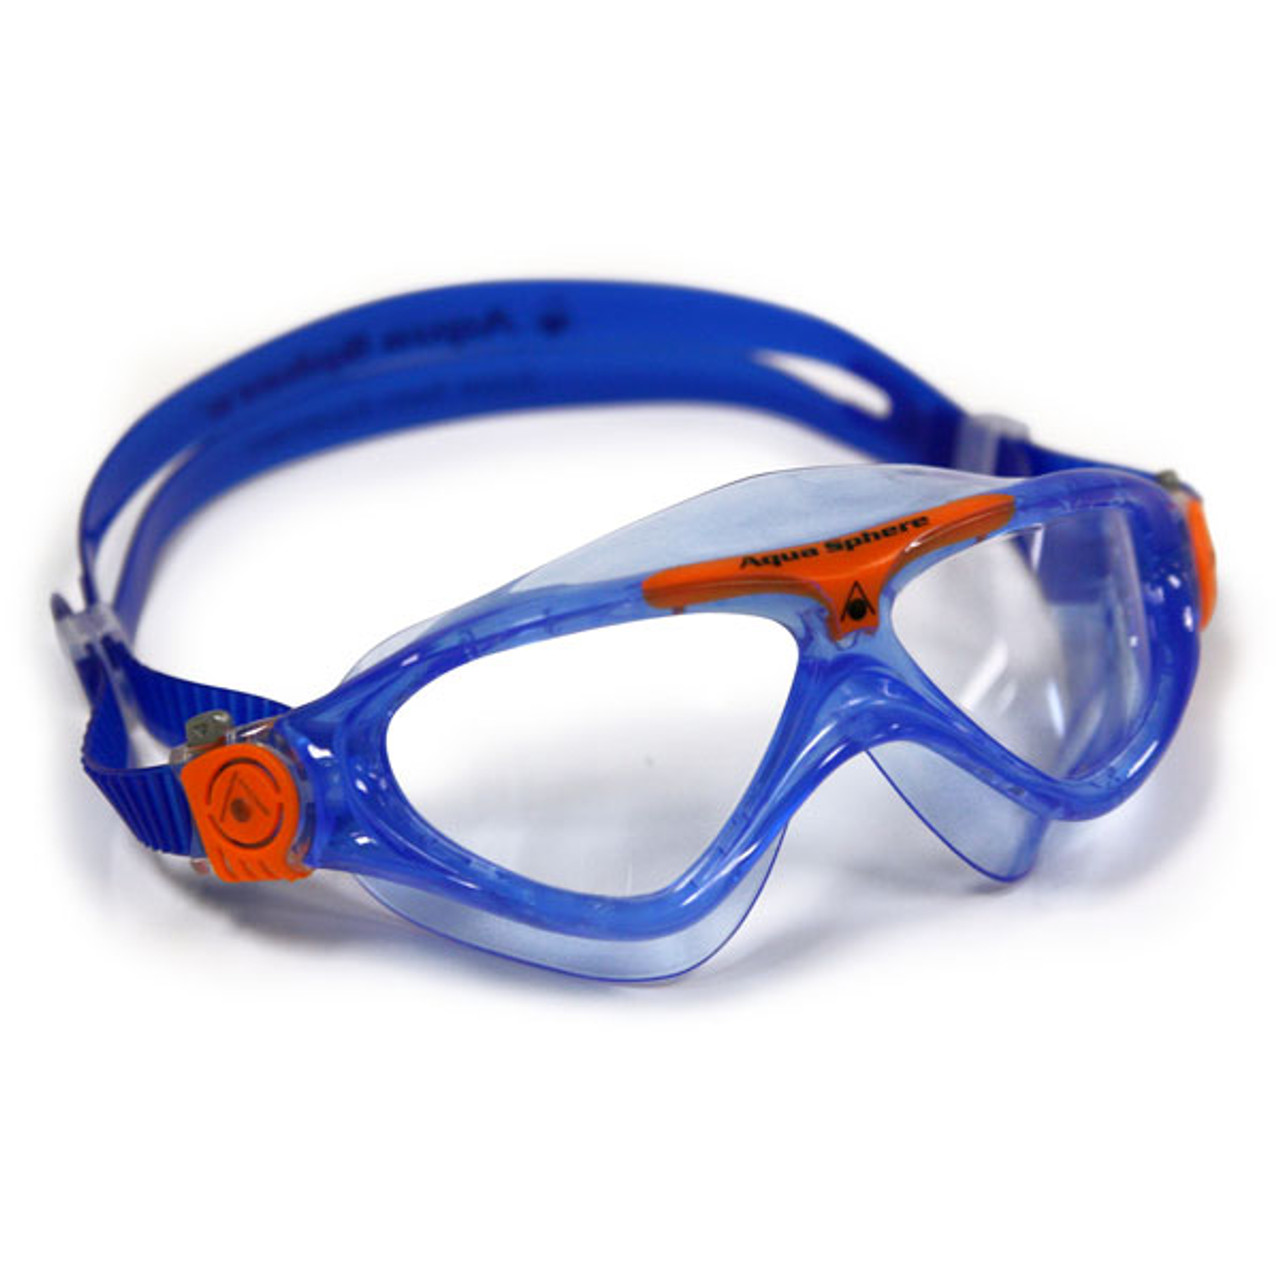 9c98ff5394 Aqua Sphere Junior Vista Swim mask - Swim Goggle - Swim Accessories